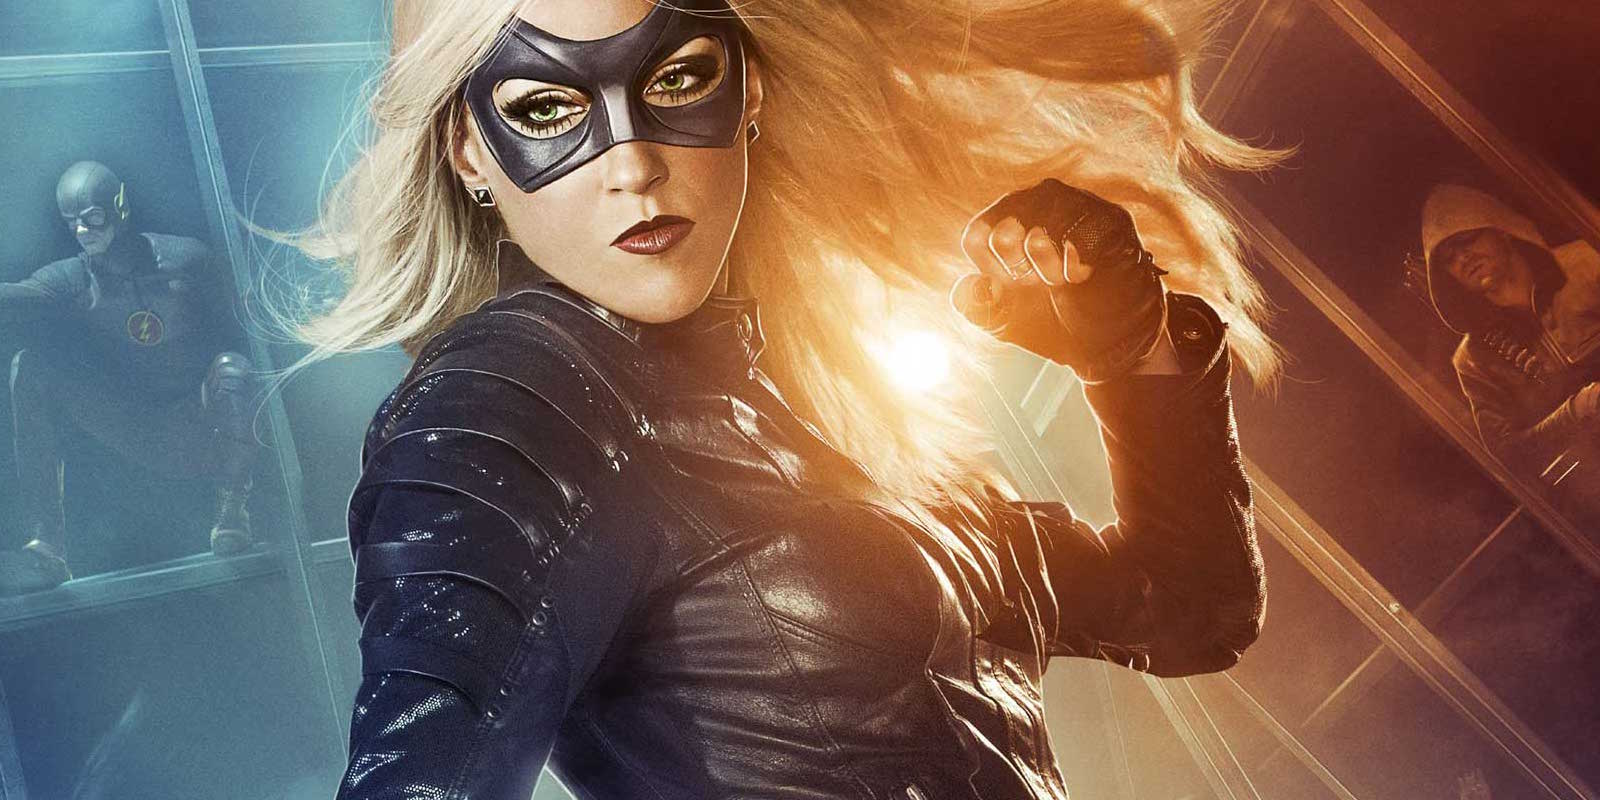 Arrow season 5 - Black Canary